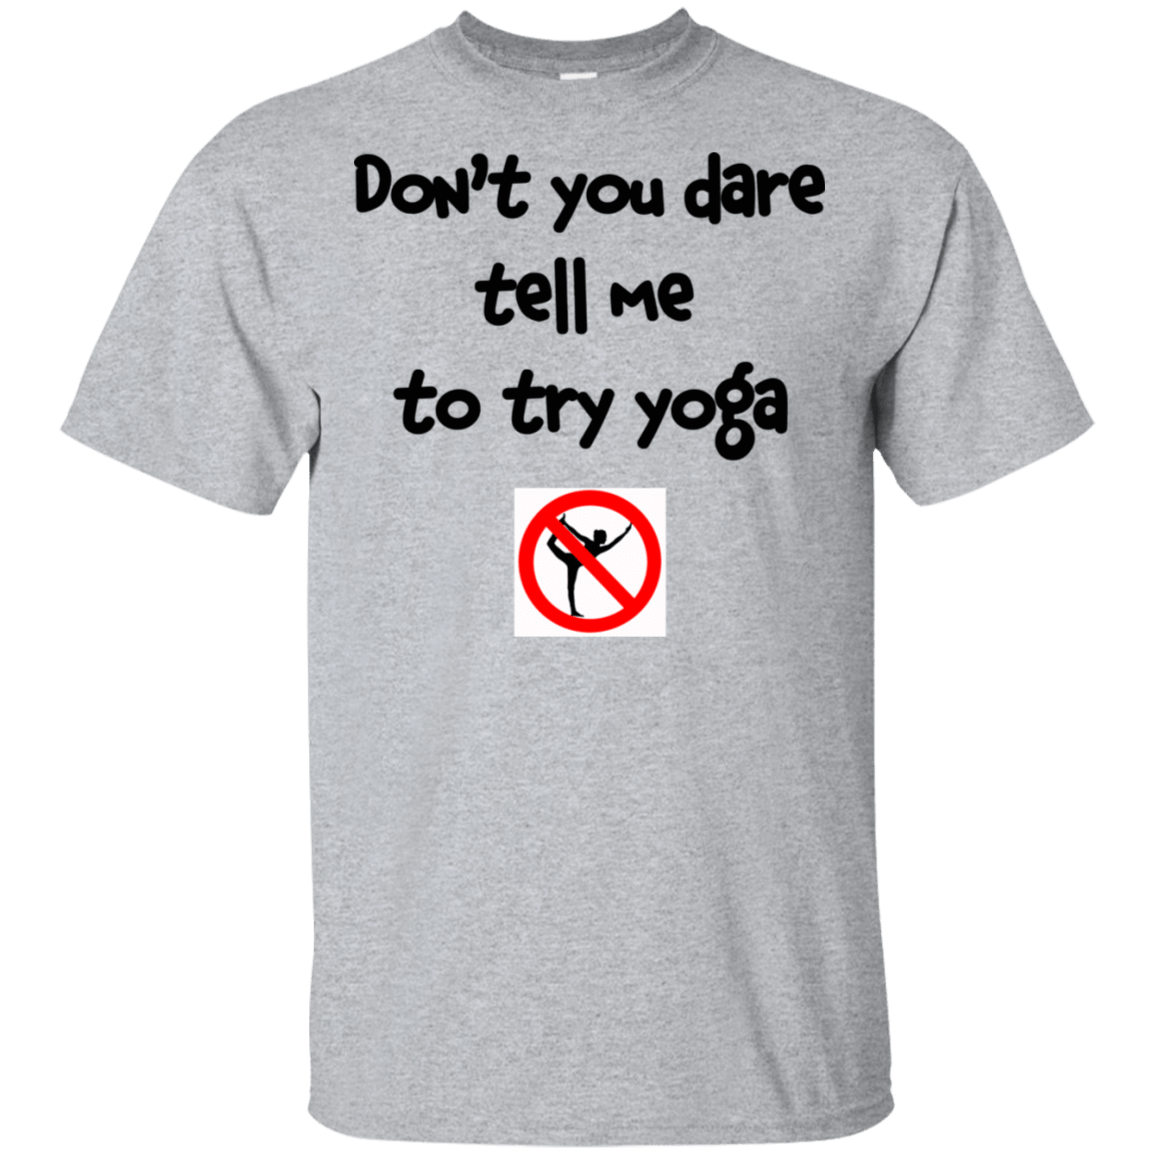 Don't You Dare Tell Me To Try Yoga 22-115-73056938-254 - Tee Ript